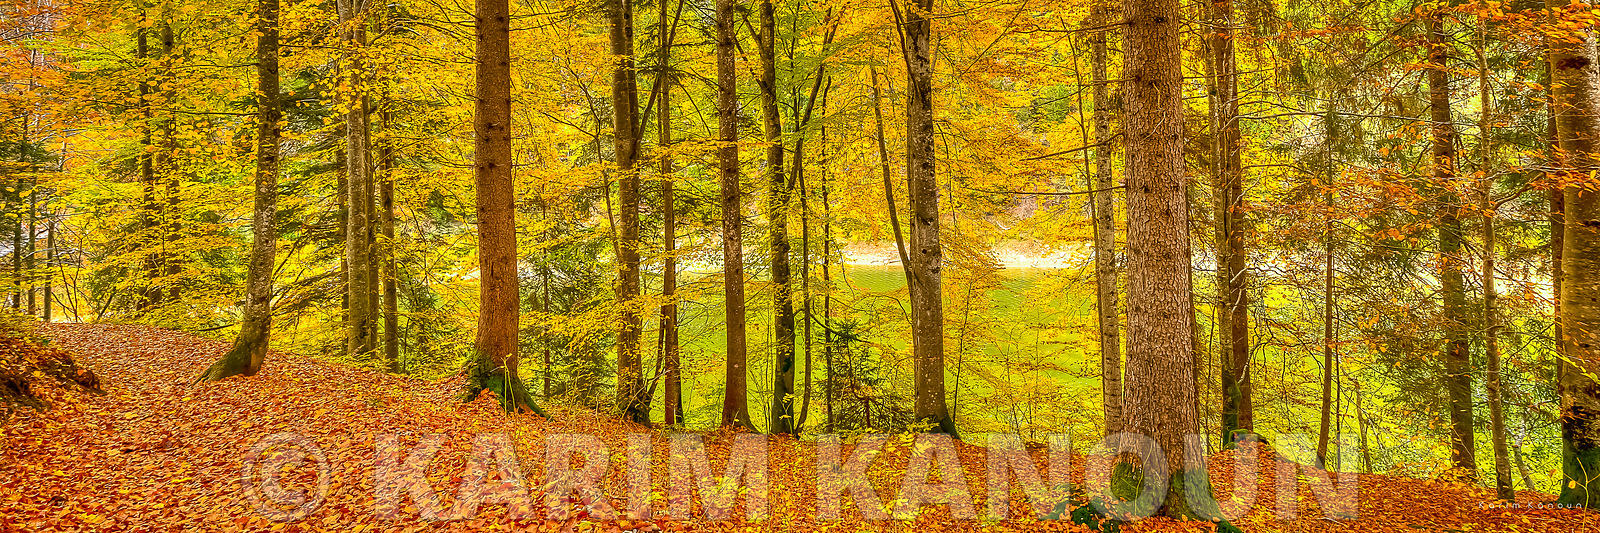 Panorama - Forest with autumn colors - Gruyère